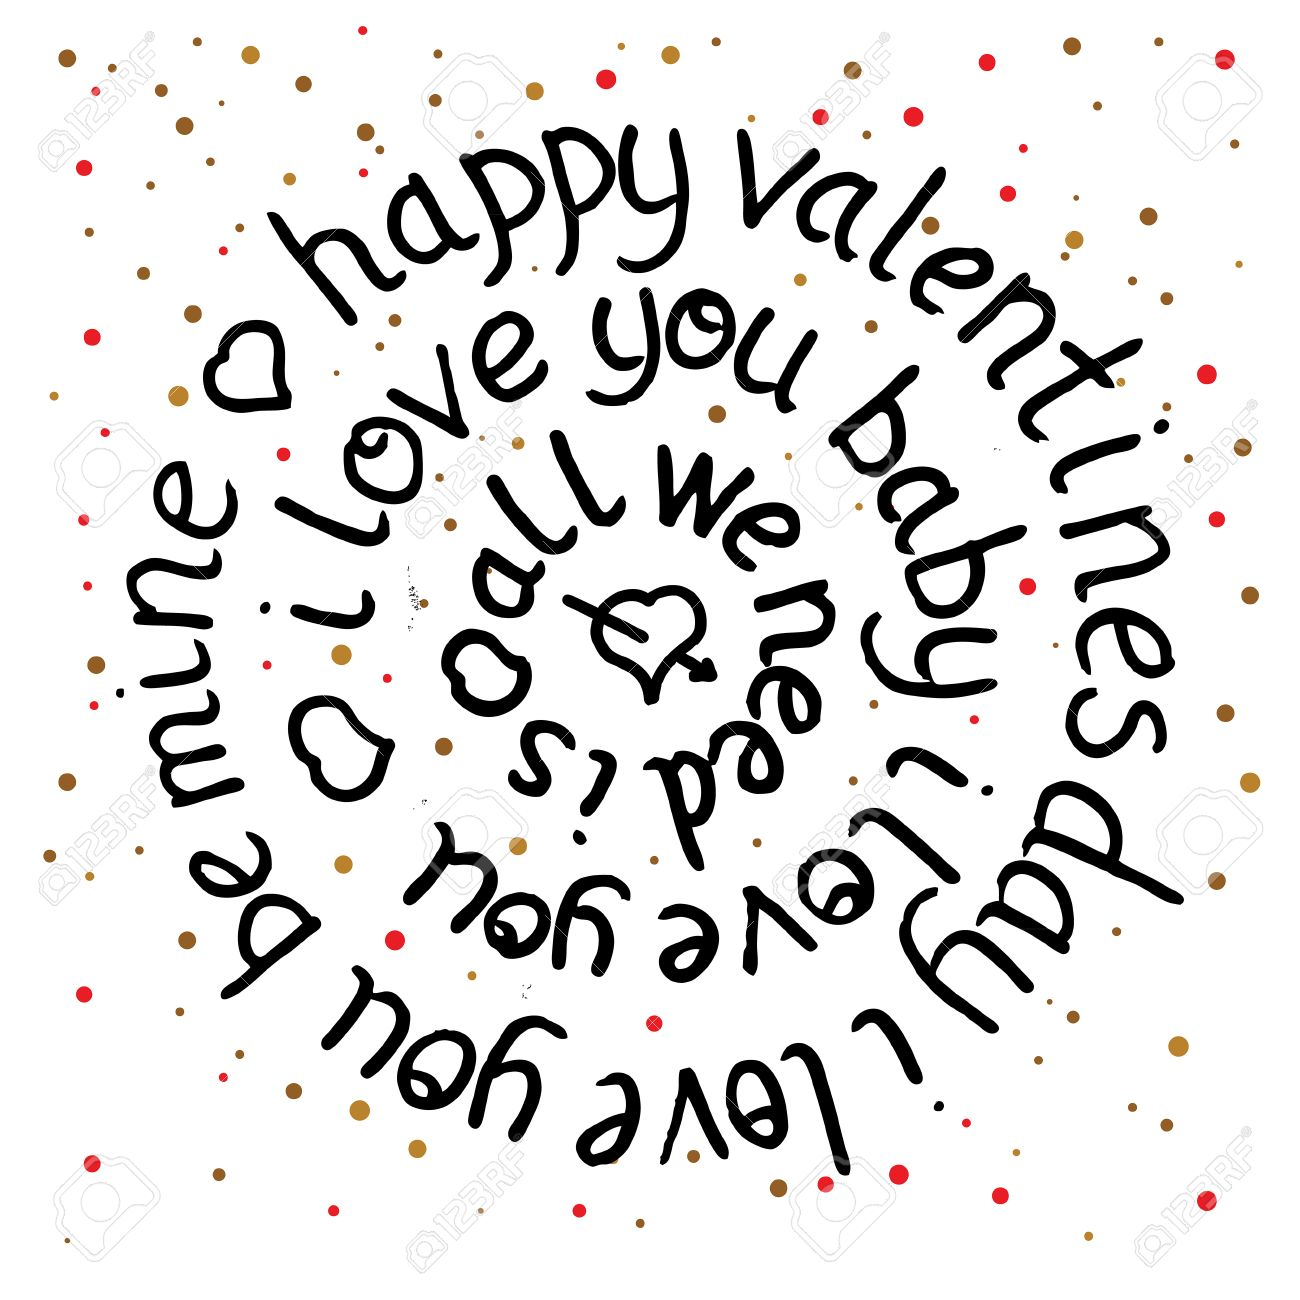 Valentines day round lettering on dot background. Vector illustration. All we need is love